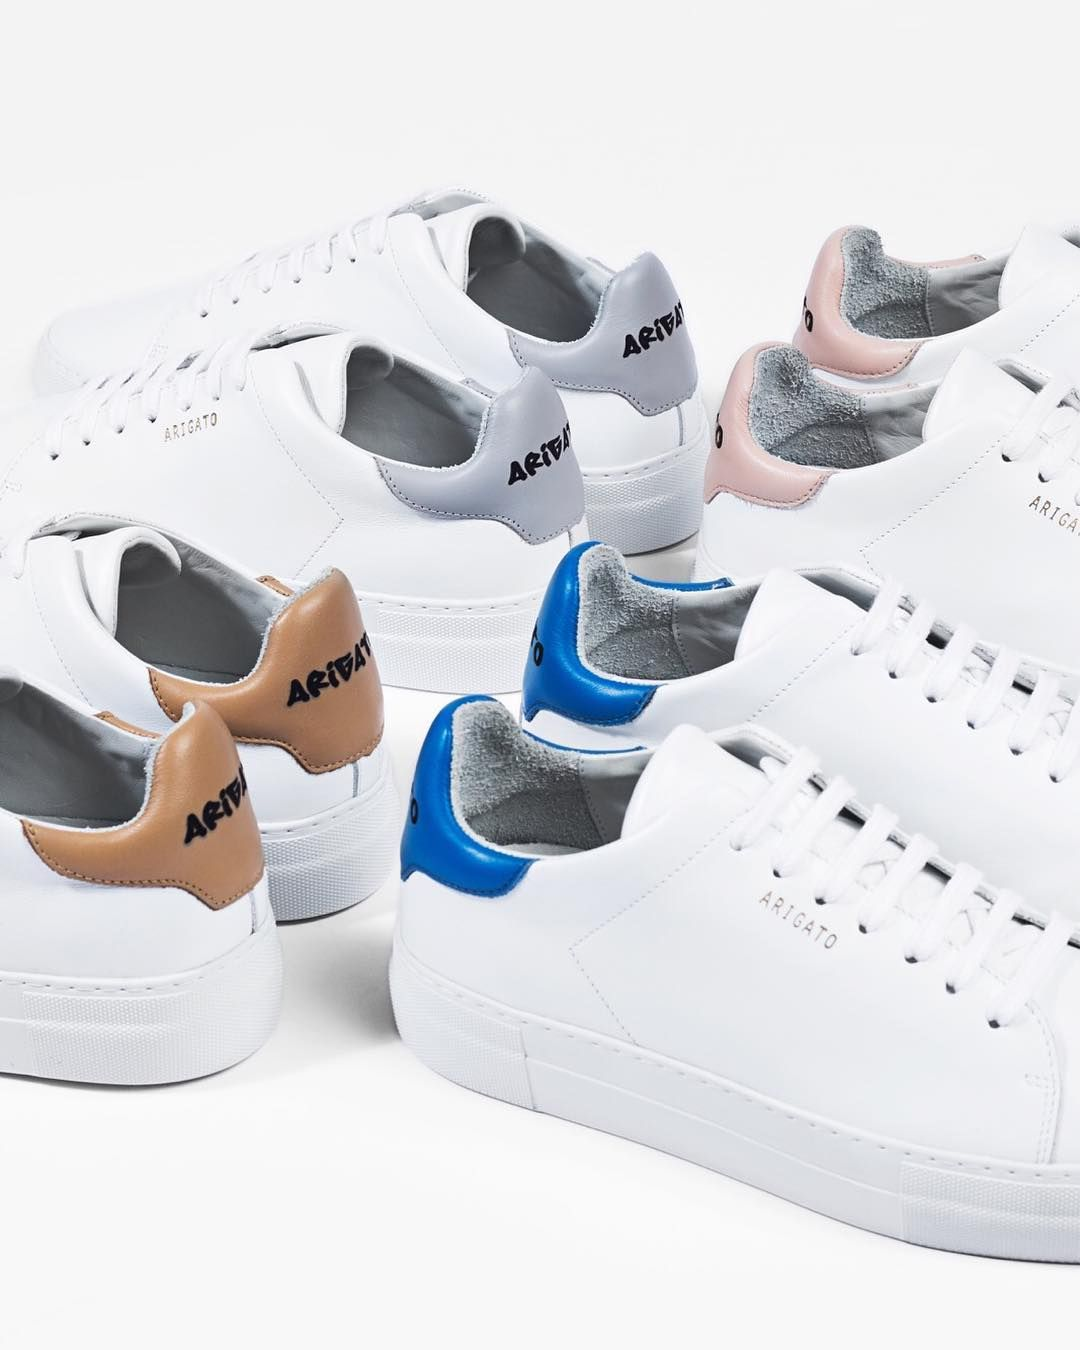 axelarigato #shoes #leather #sneakers